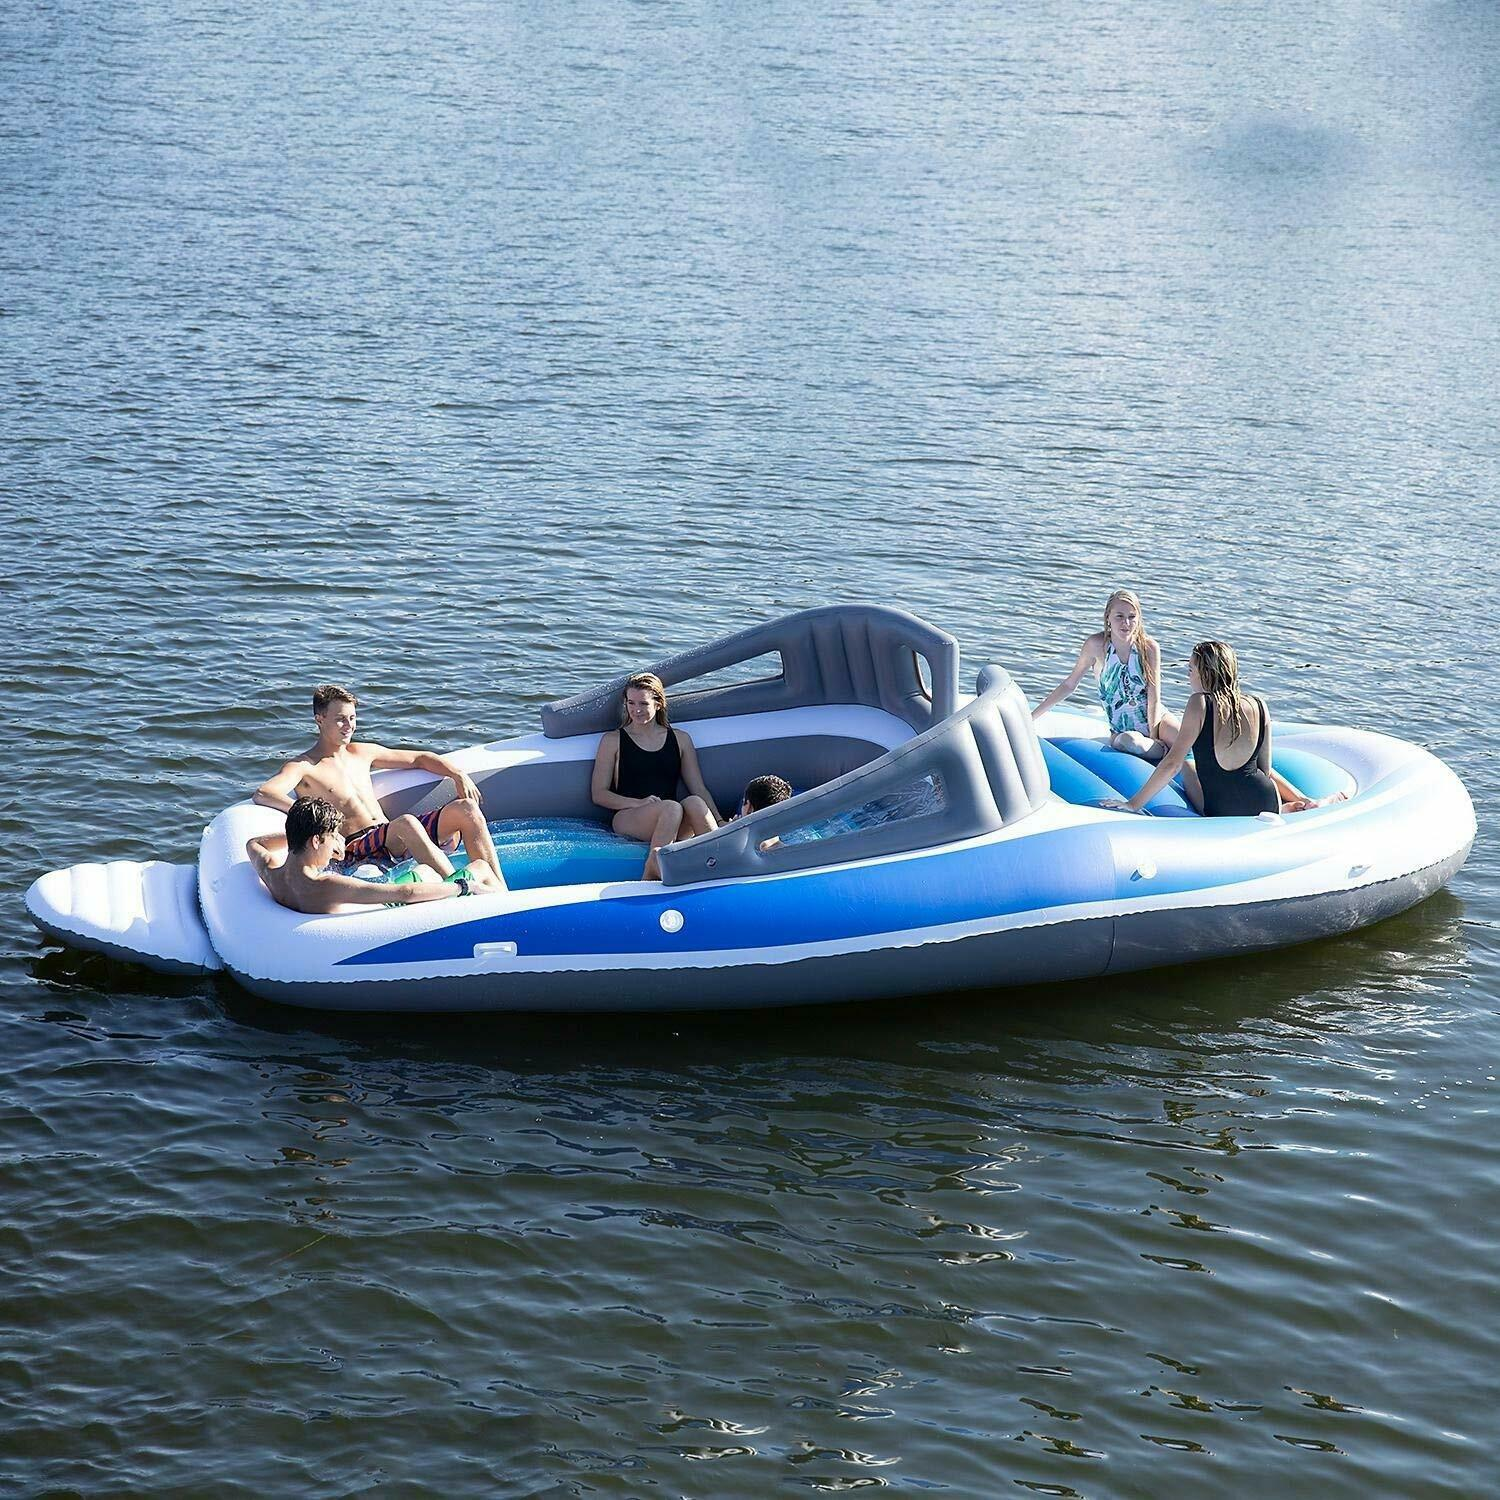 6-Person Inflatable Bay Breeze Boat Island Wakeboard